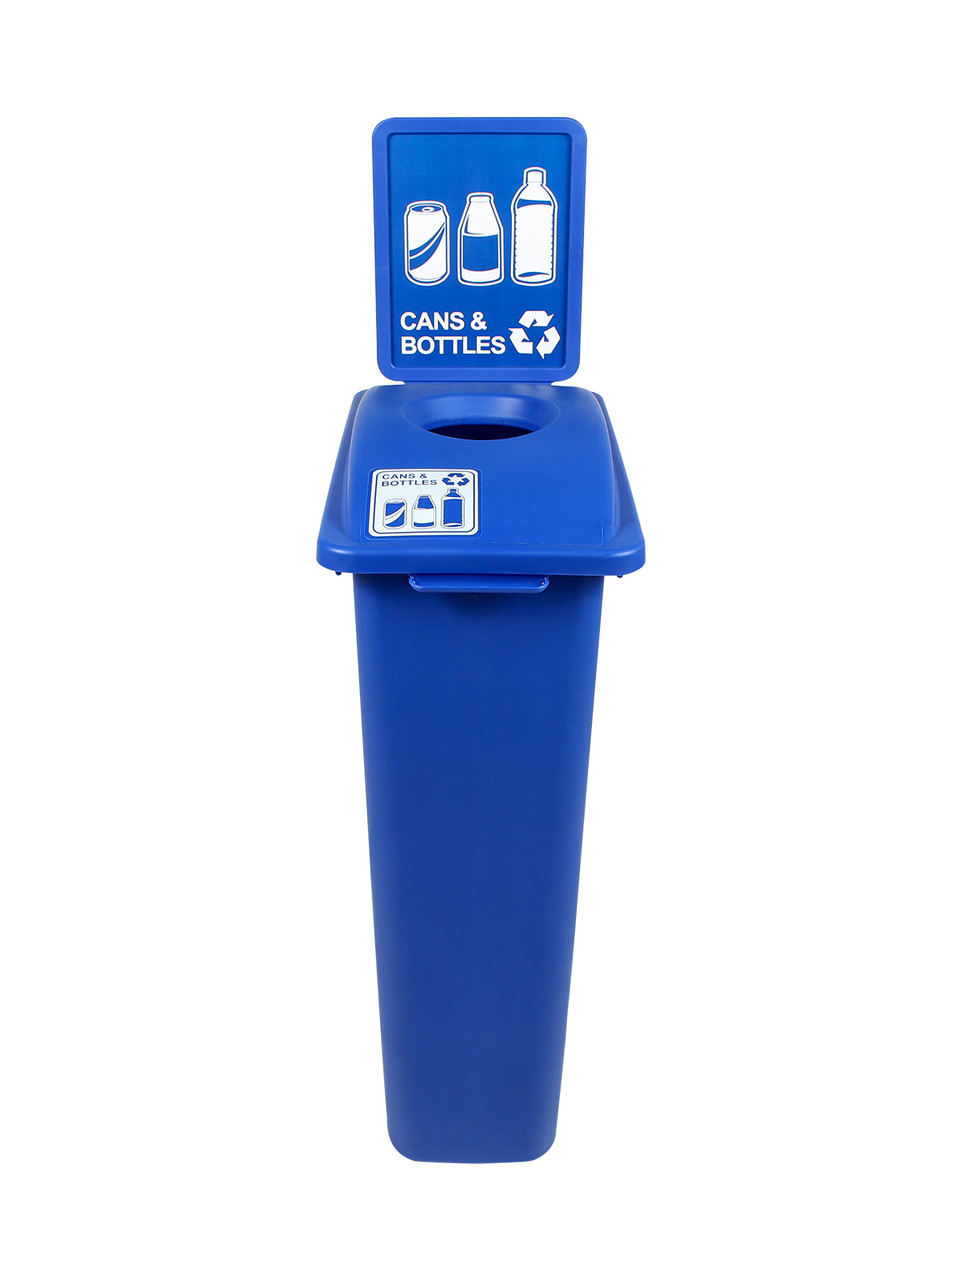 23 Gallon Blue Skinny Recycle Bin with Sign (Cans & Bottles)